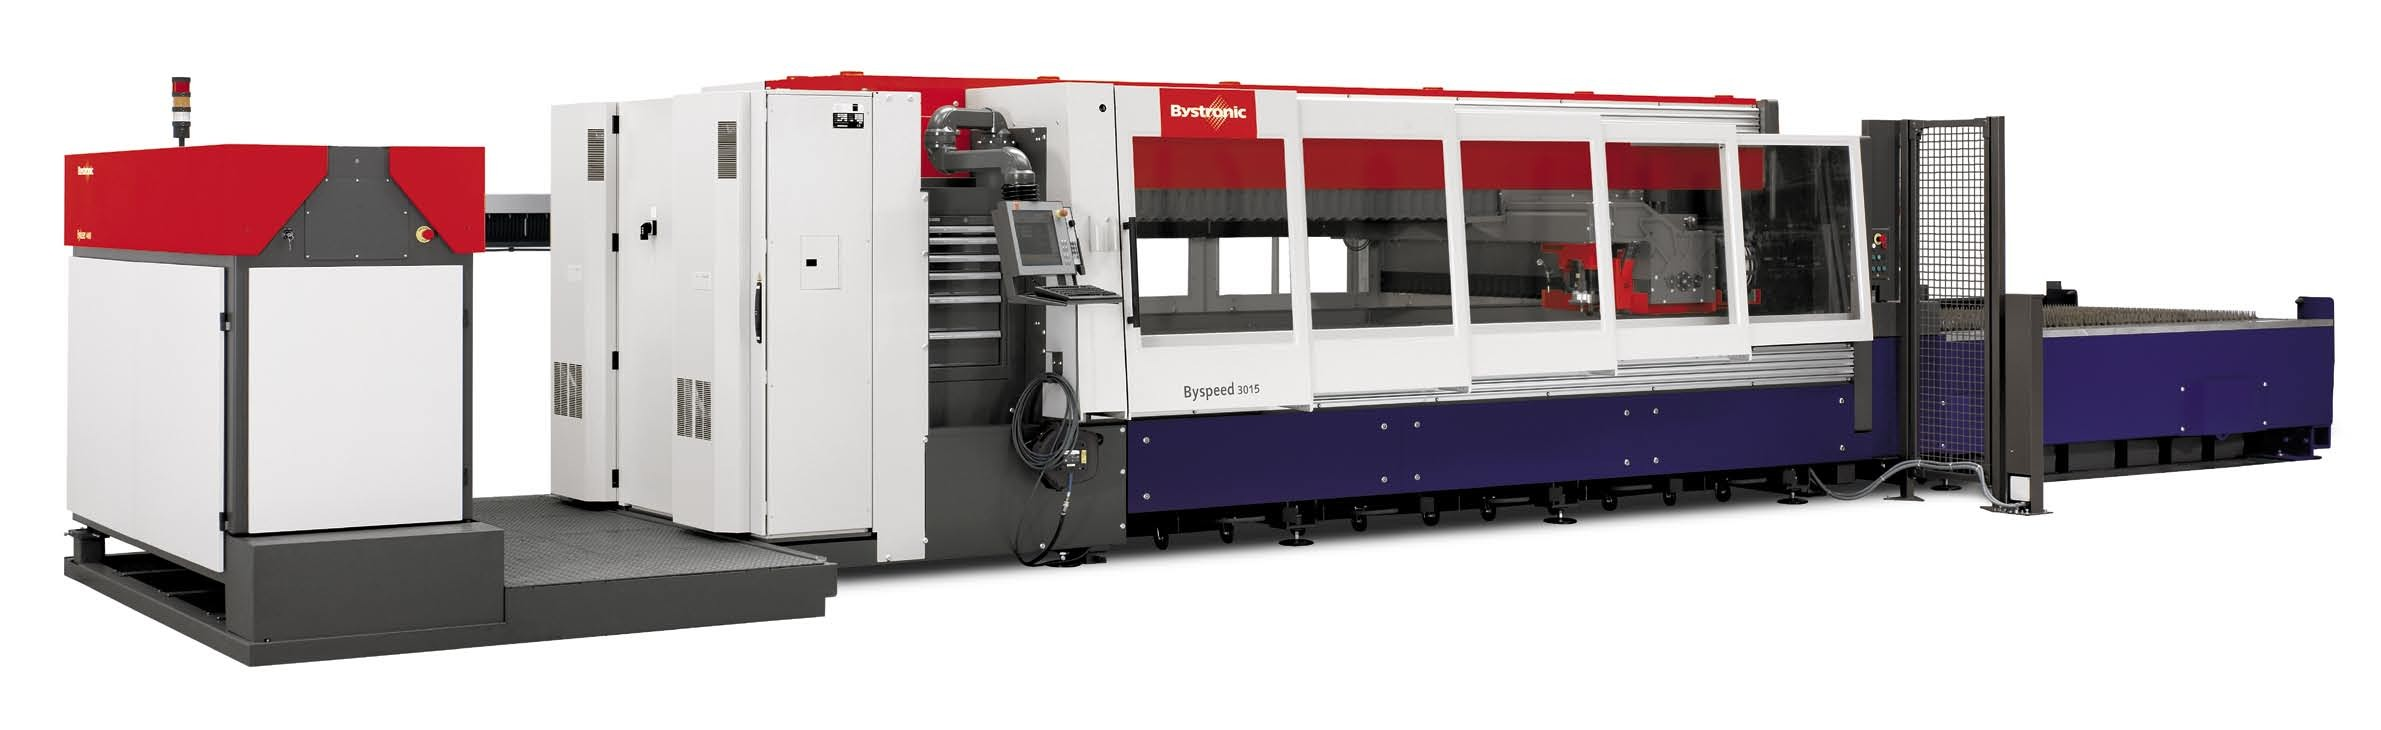 Sharland Metals Laser Cutter